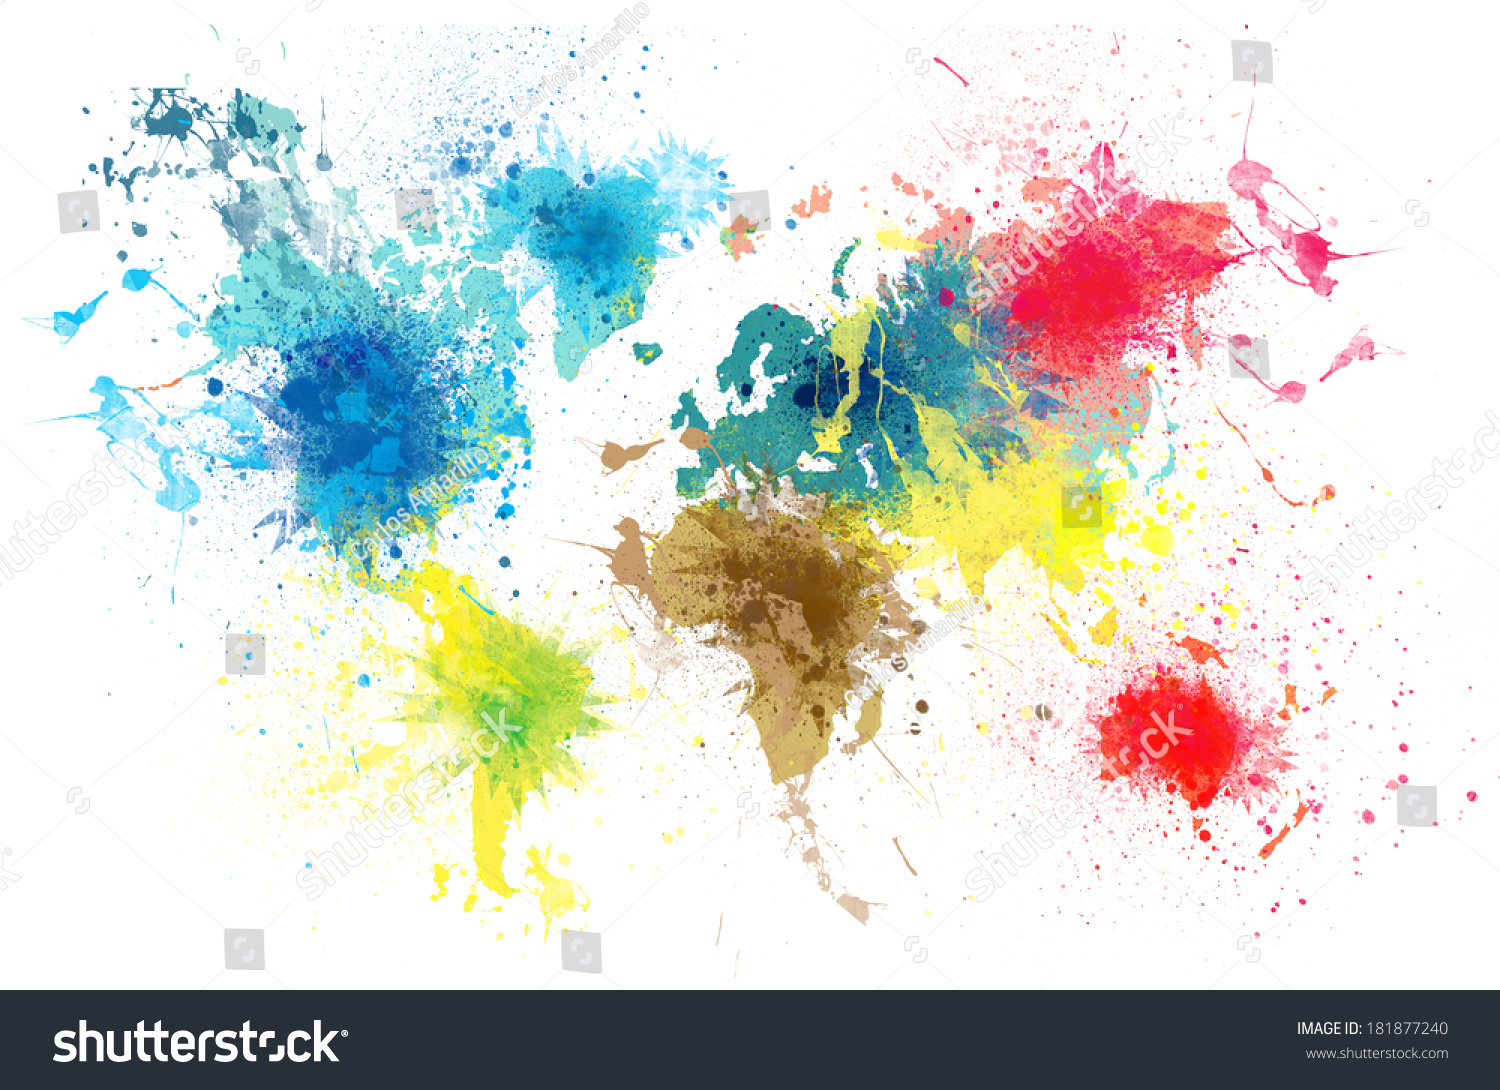 World map paint splashes stock illustration 181877240 shutterstock world map with paint splashes gumiabroncs Image collections